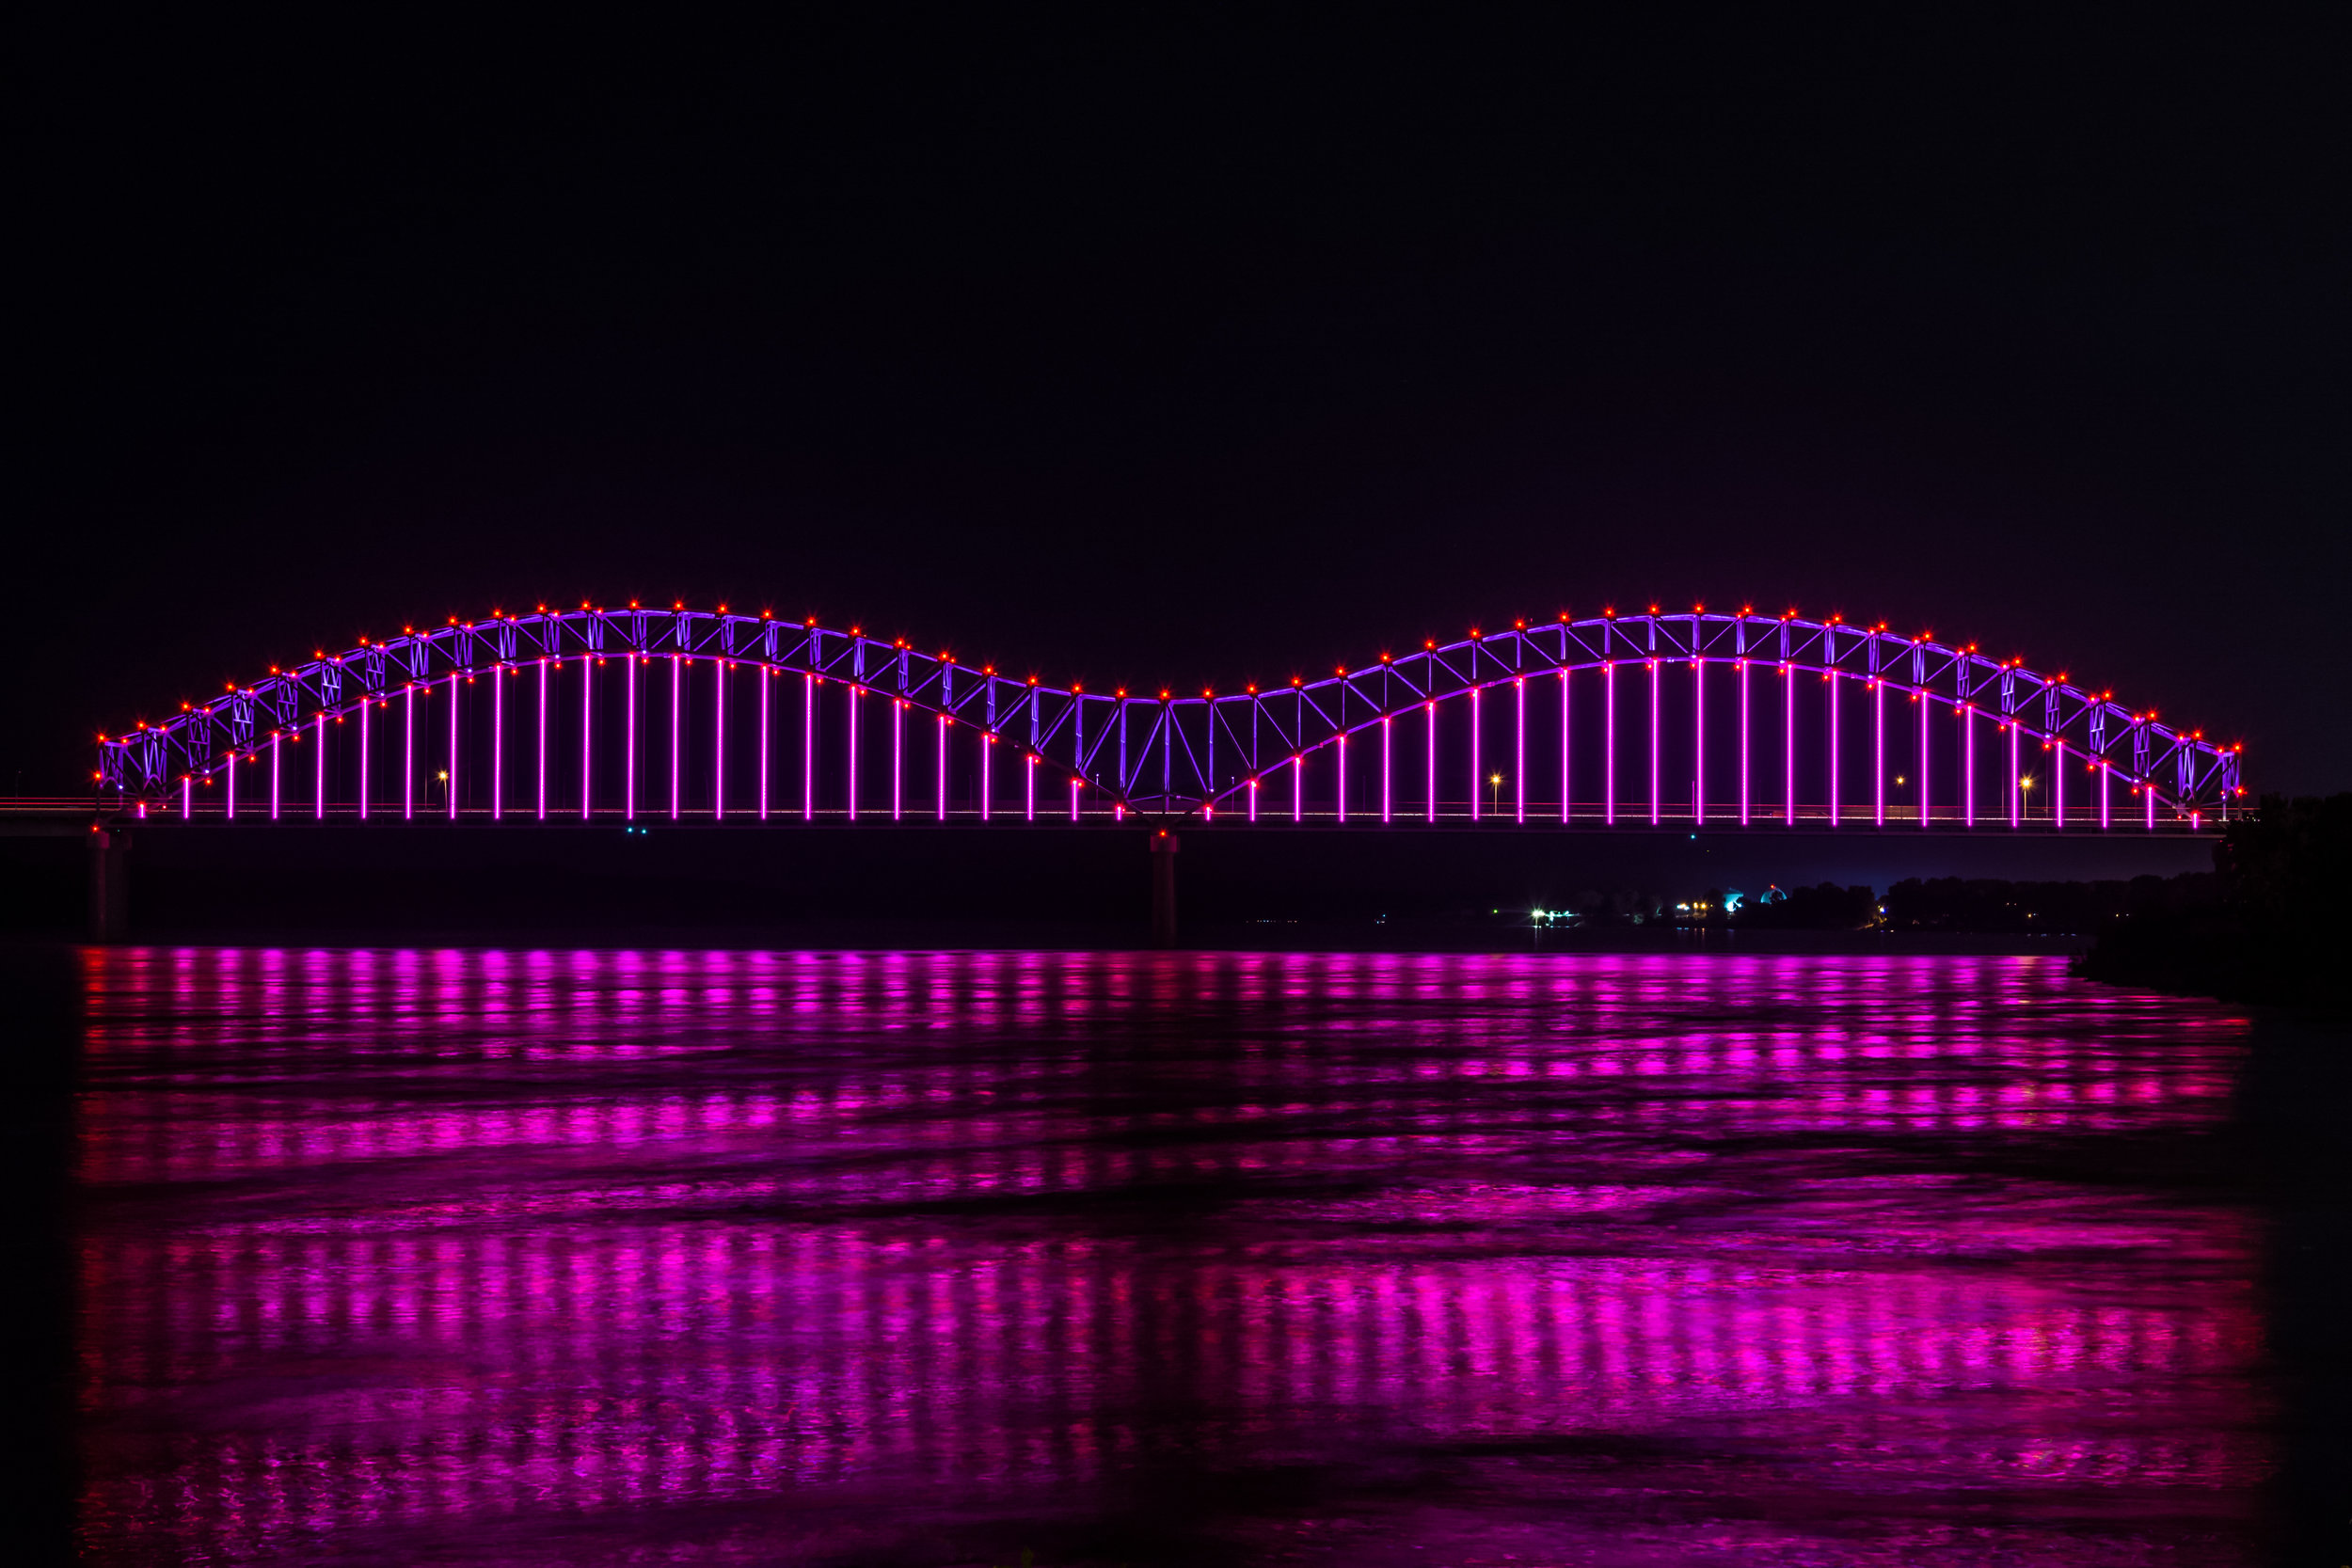 the current event of the year - Ceremonies begin at 6:30 pm leading to 7 pm revealRiverArtsFest – Riverside DriveFestival admission free after 5pmOr view from anywhere you can see both bridges